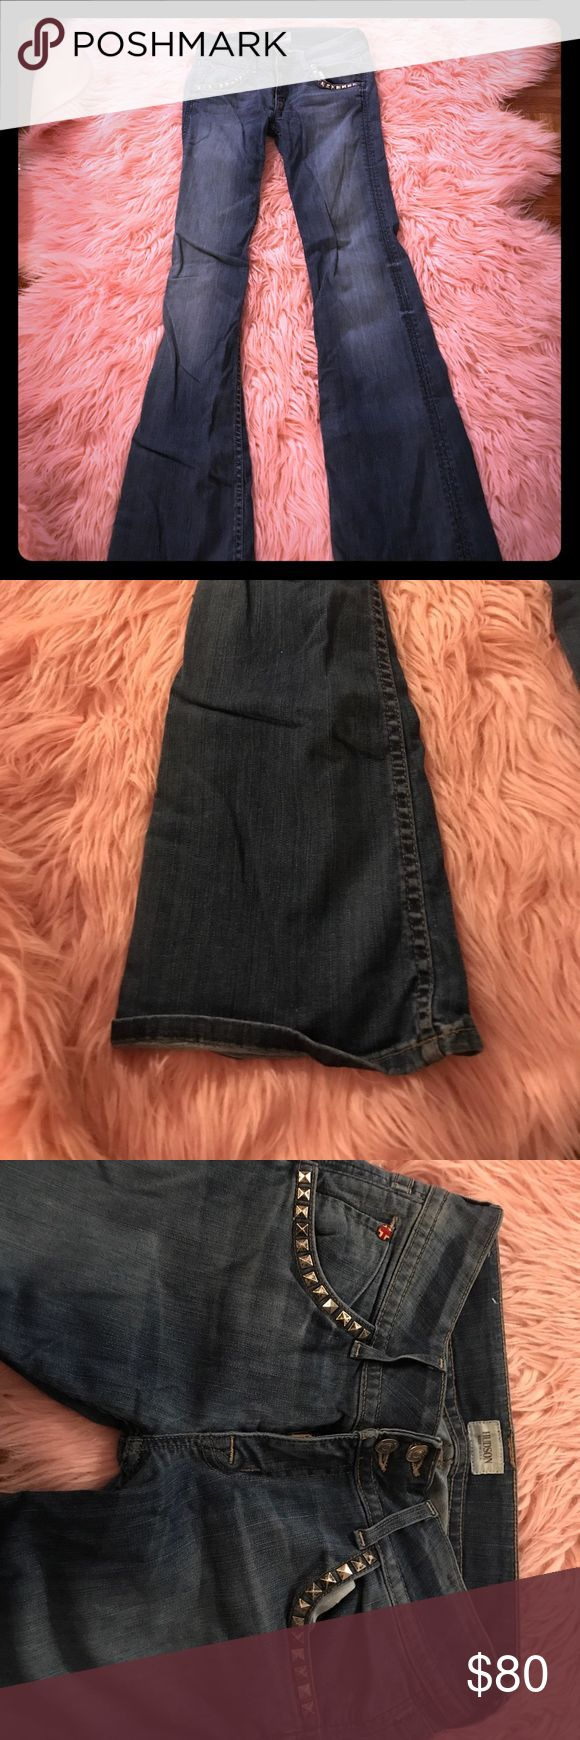 """Hudson Jeans with Studs Hudson Signature Bootleg Jeans w/19"""" opening. Silver nail heads on front pockets and back. Wear on bottom/back Hudson Jeans Jeans Boot Cut"""